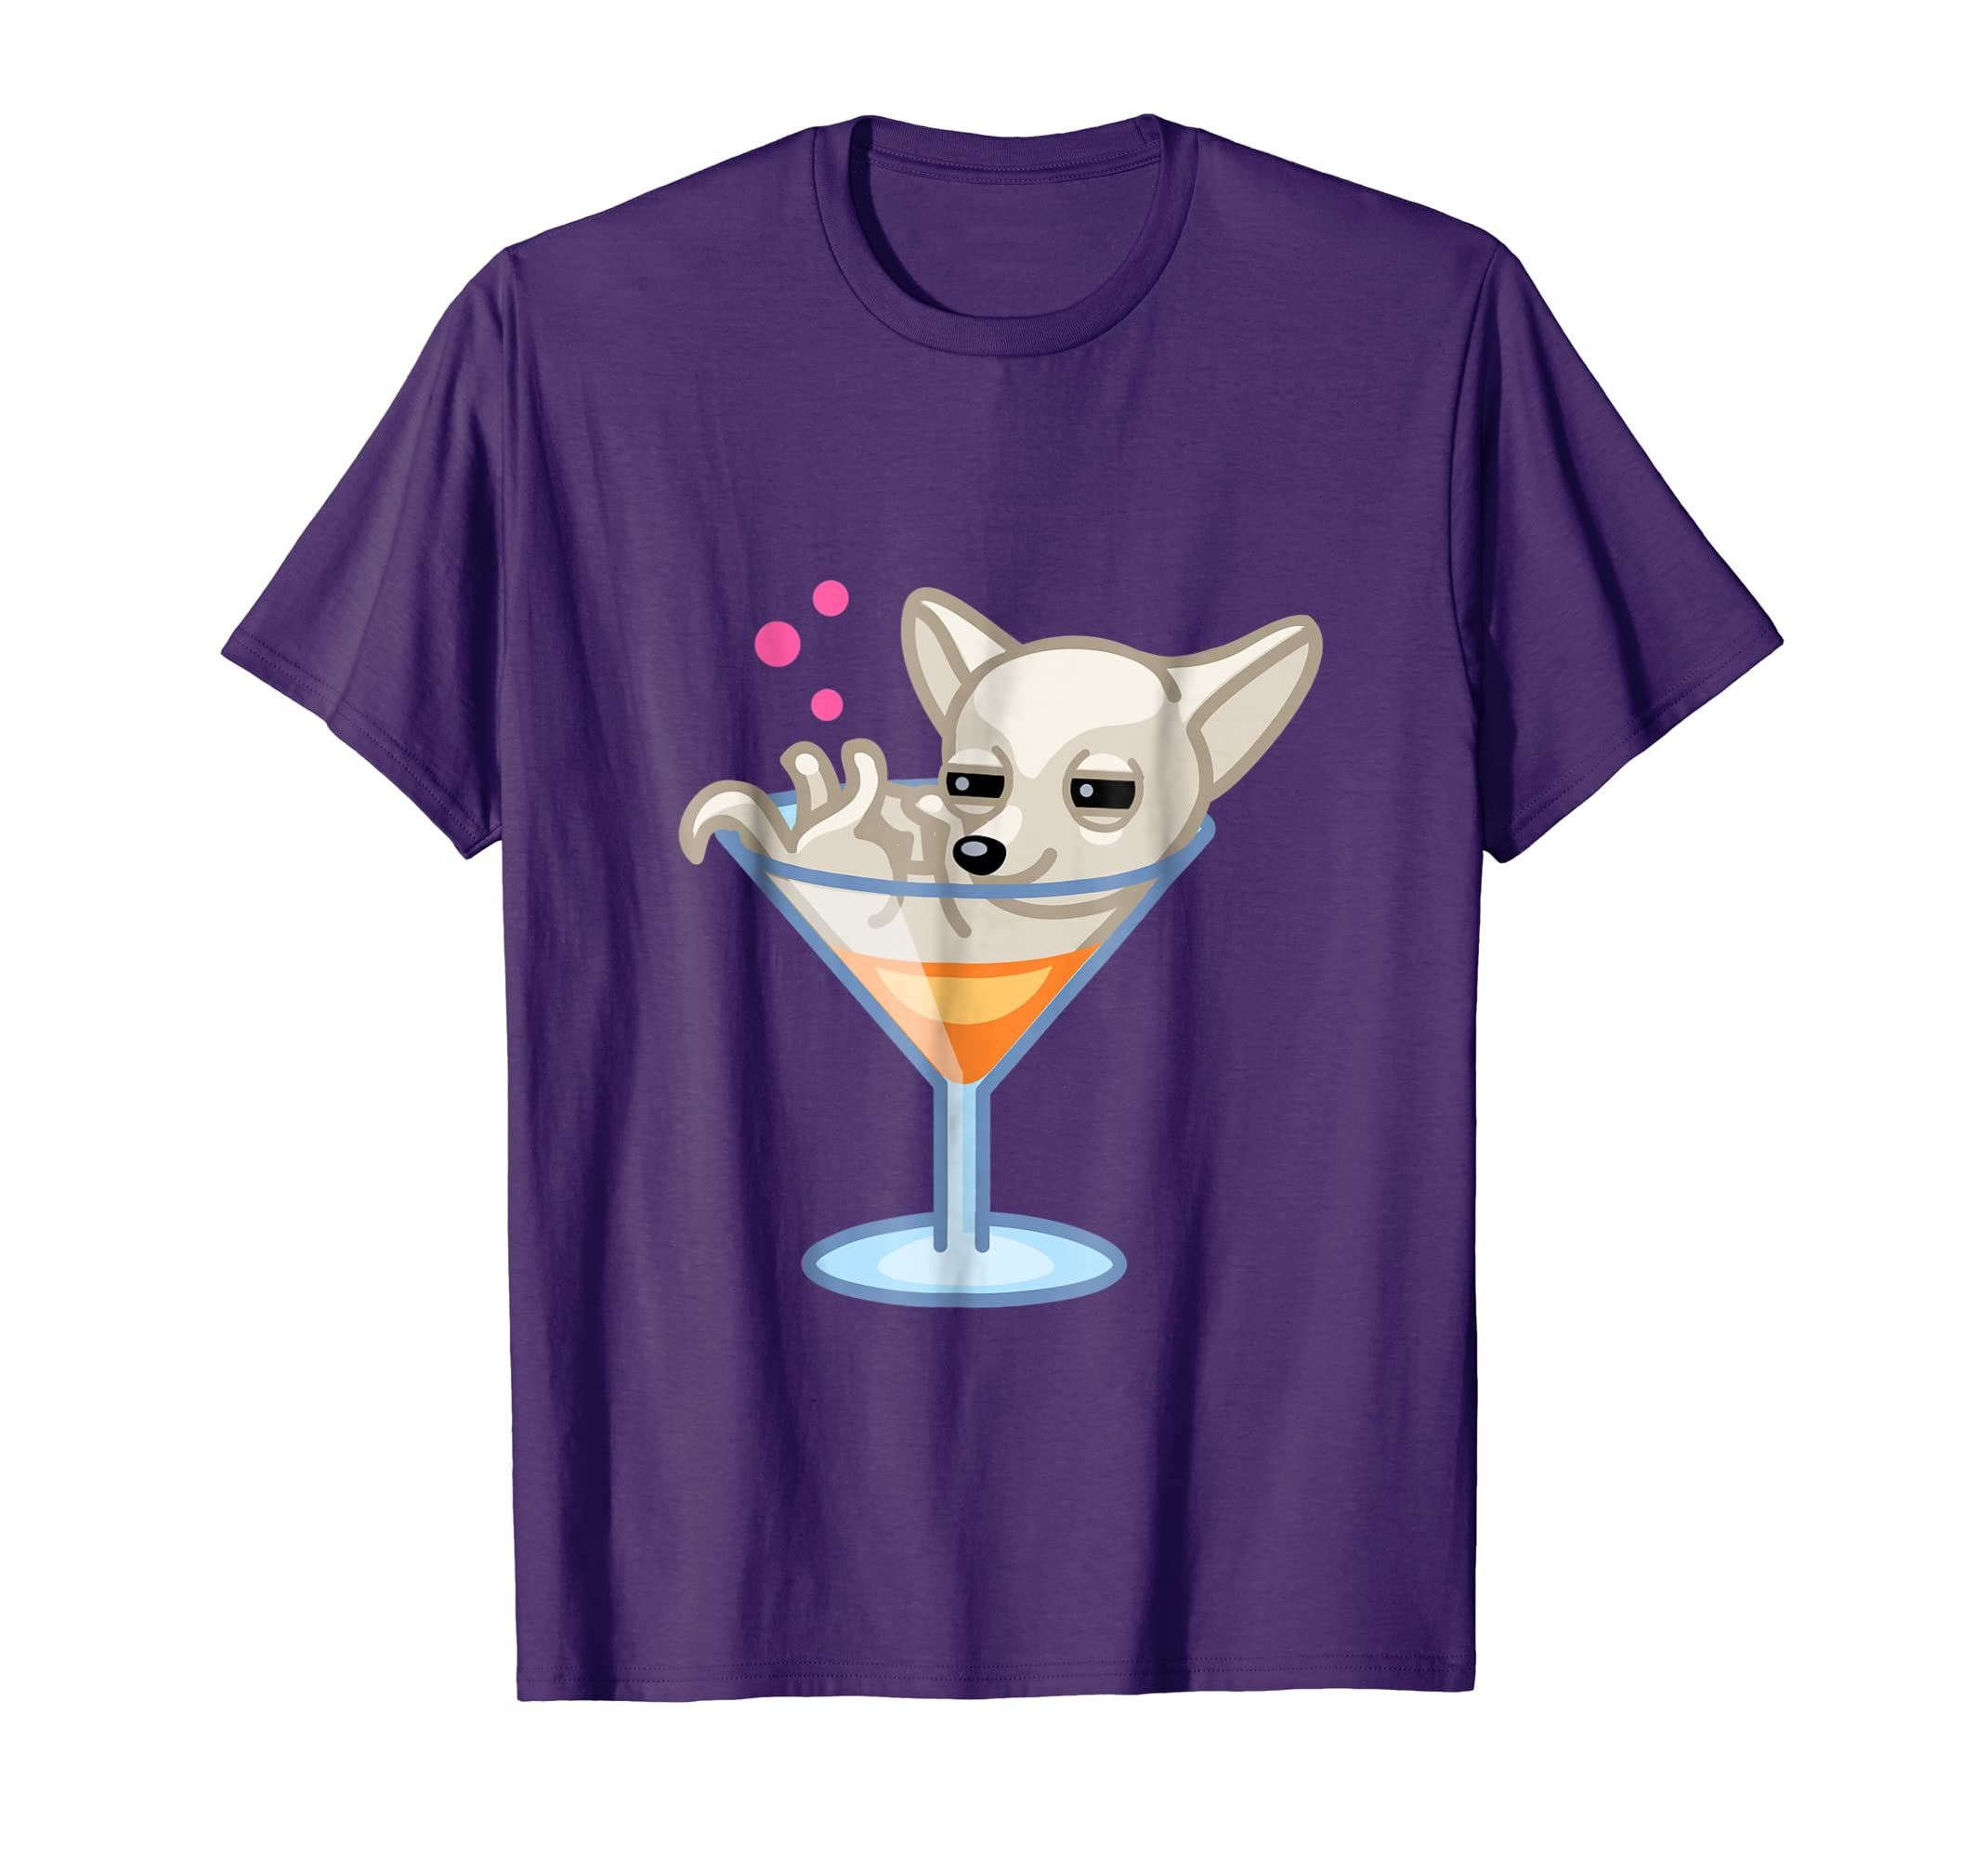 Funny Chihuahua Dog Tshirt -Dog Gifts for Dog and Pet Lovers-AZP